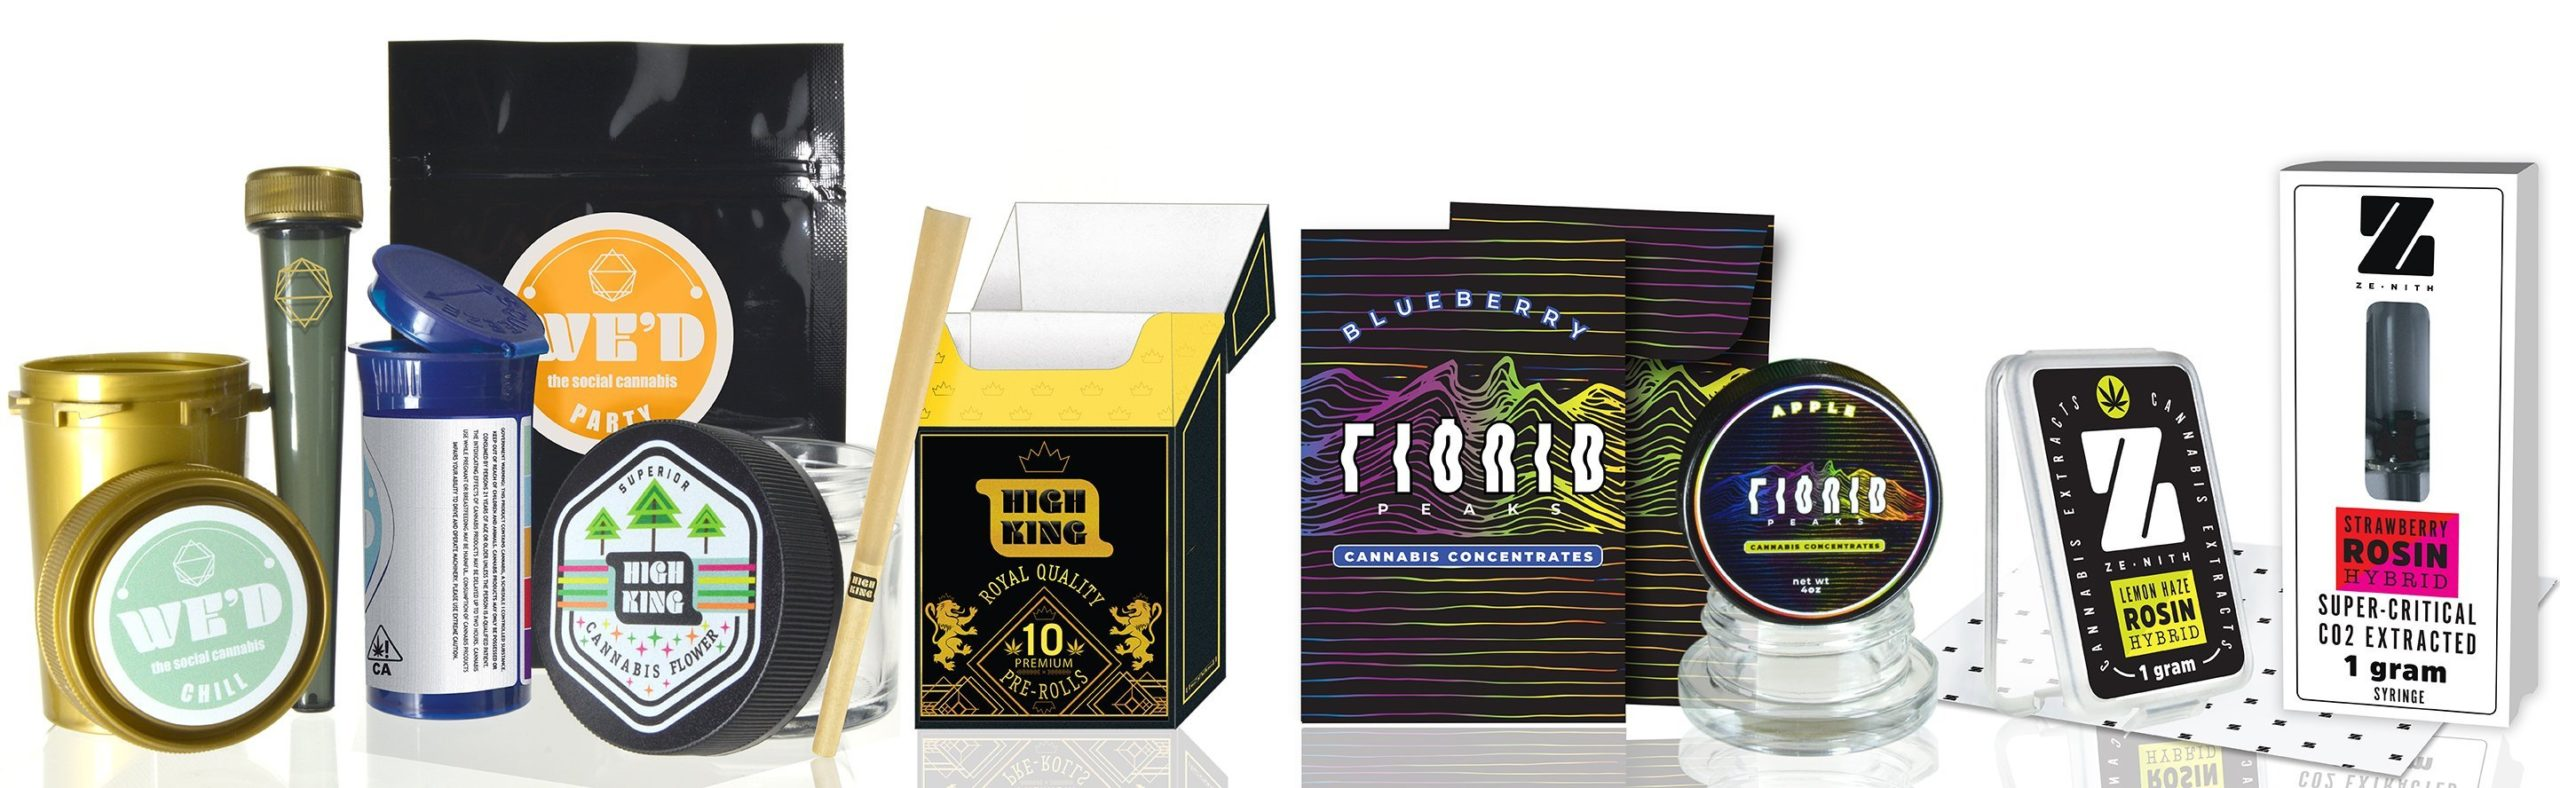 custom printed cannabis packaging scaled